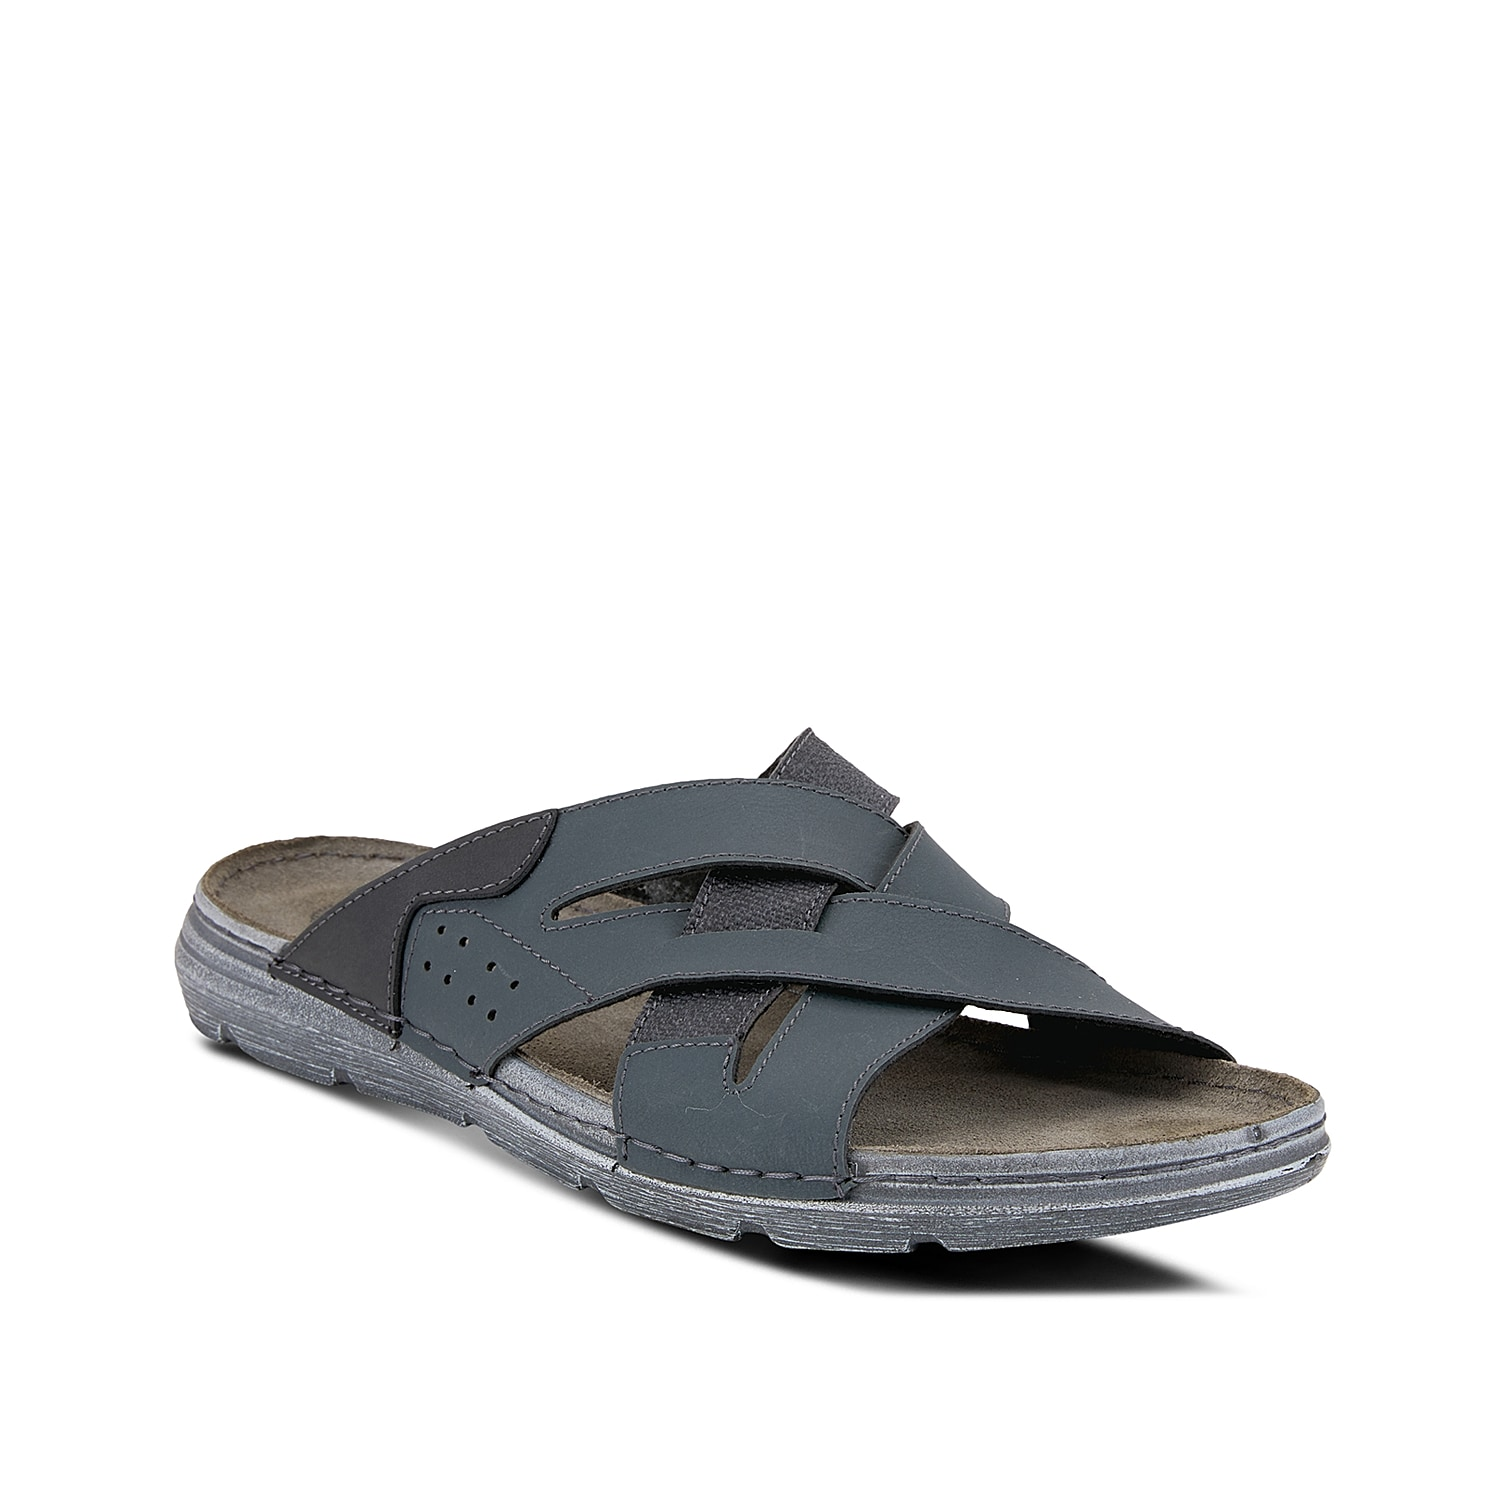 Slide into your new favorite pair with the Iwan sandal from Spring Step. This pair features a leather cushioned footbed for breathable comfort.